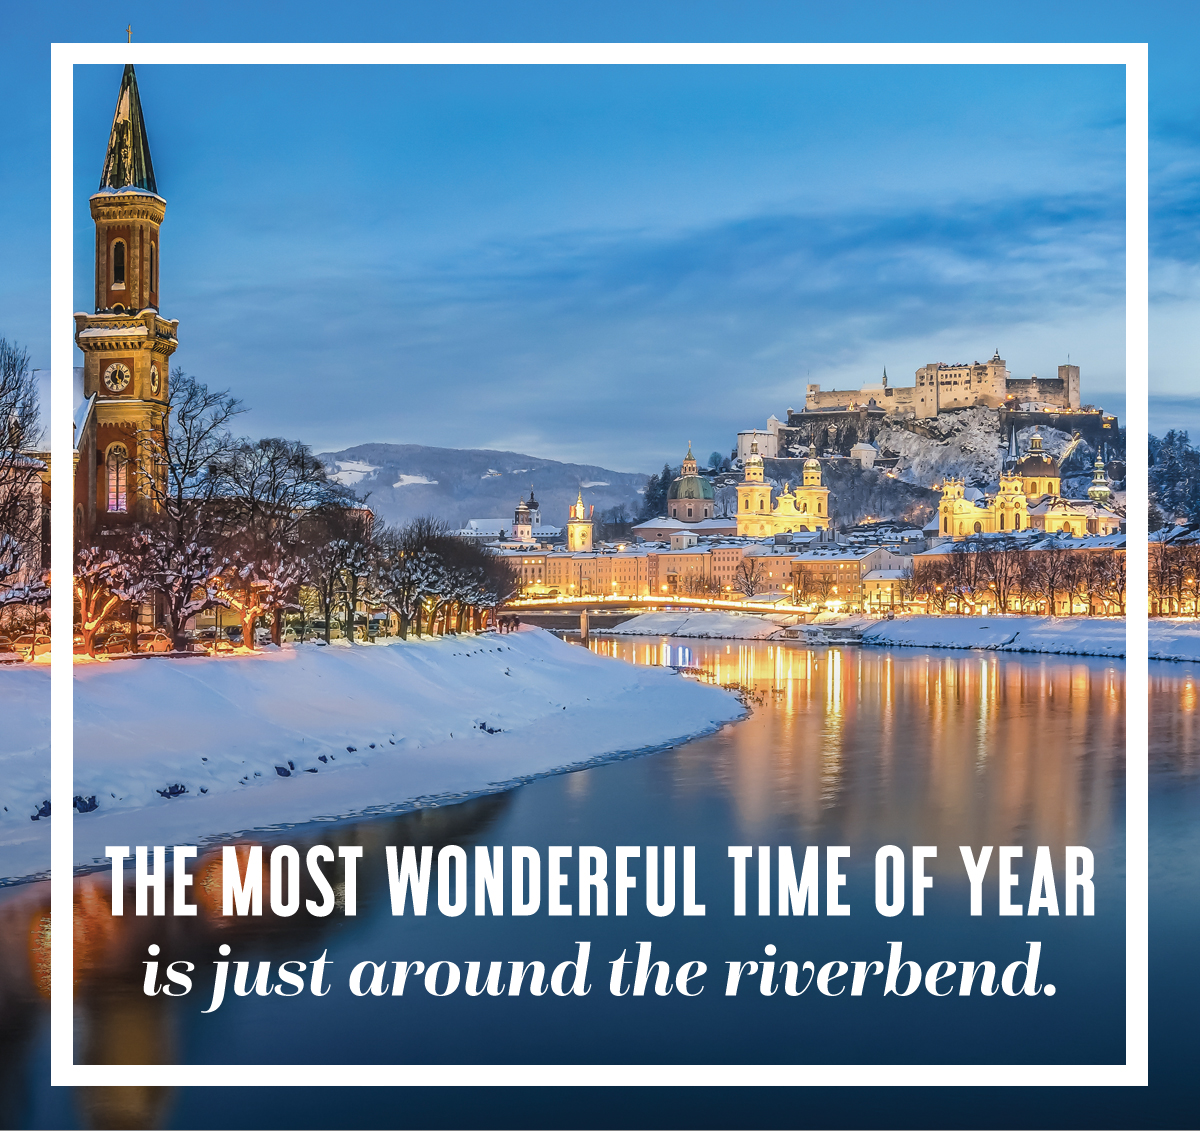 The most wonderful time of year is just around the riverbend.